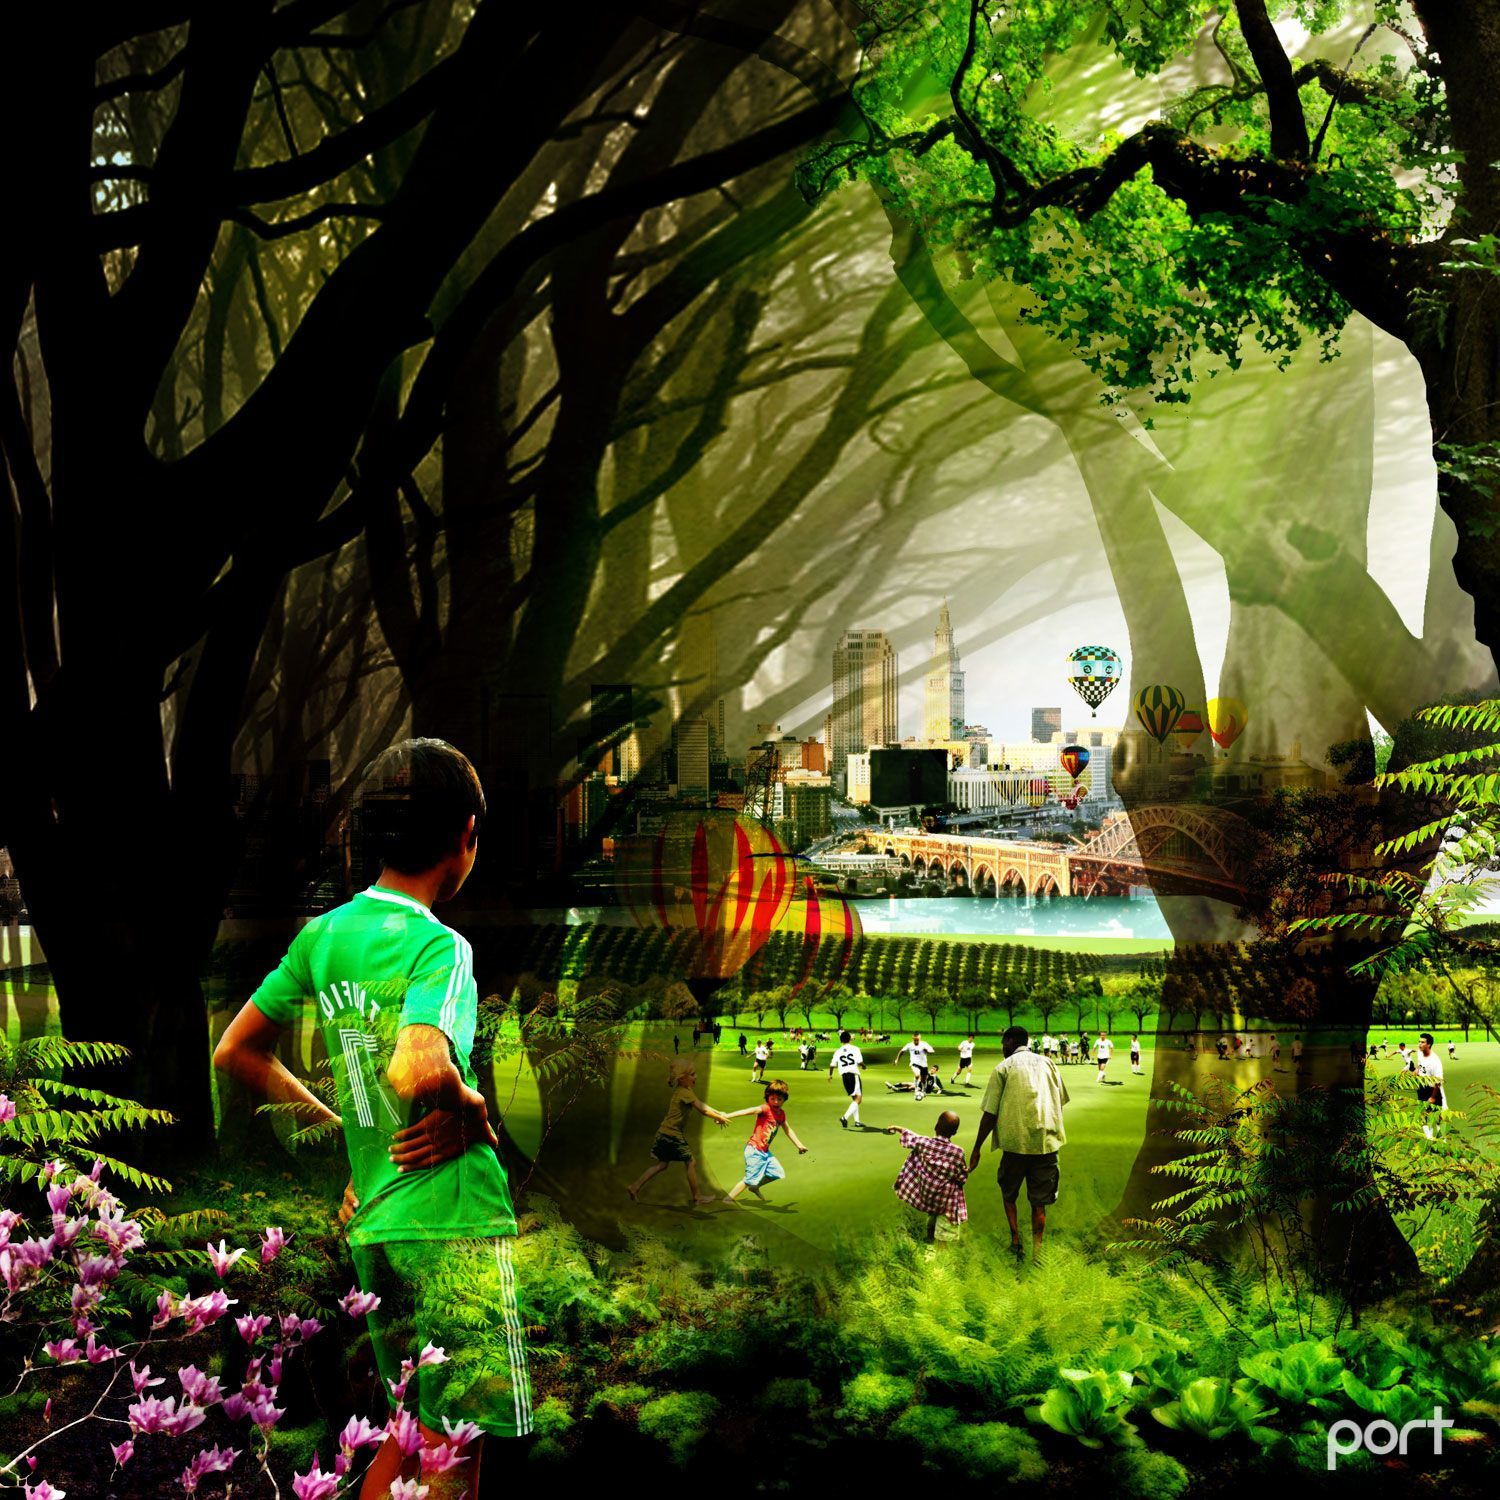 PORT_Re-Cultivating-the-Forest-City-7